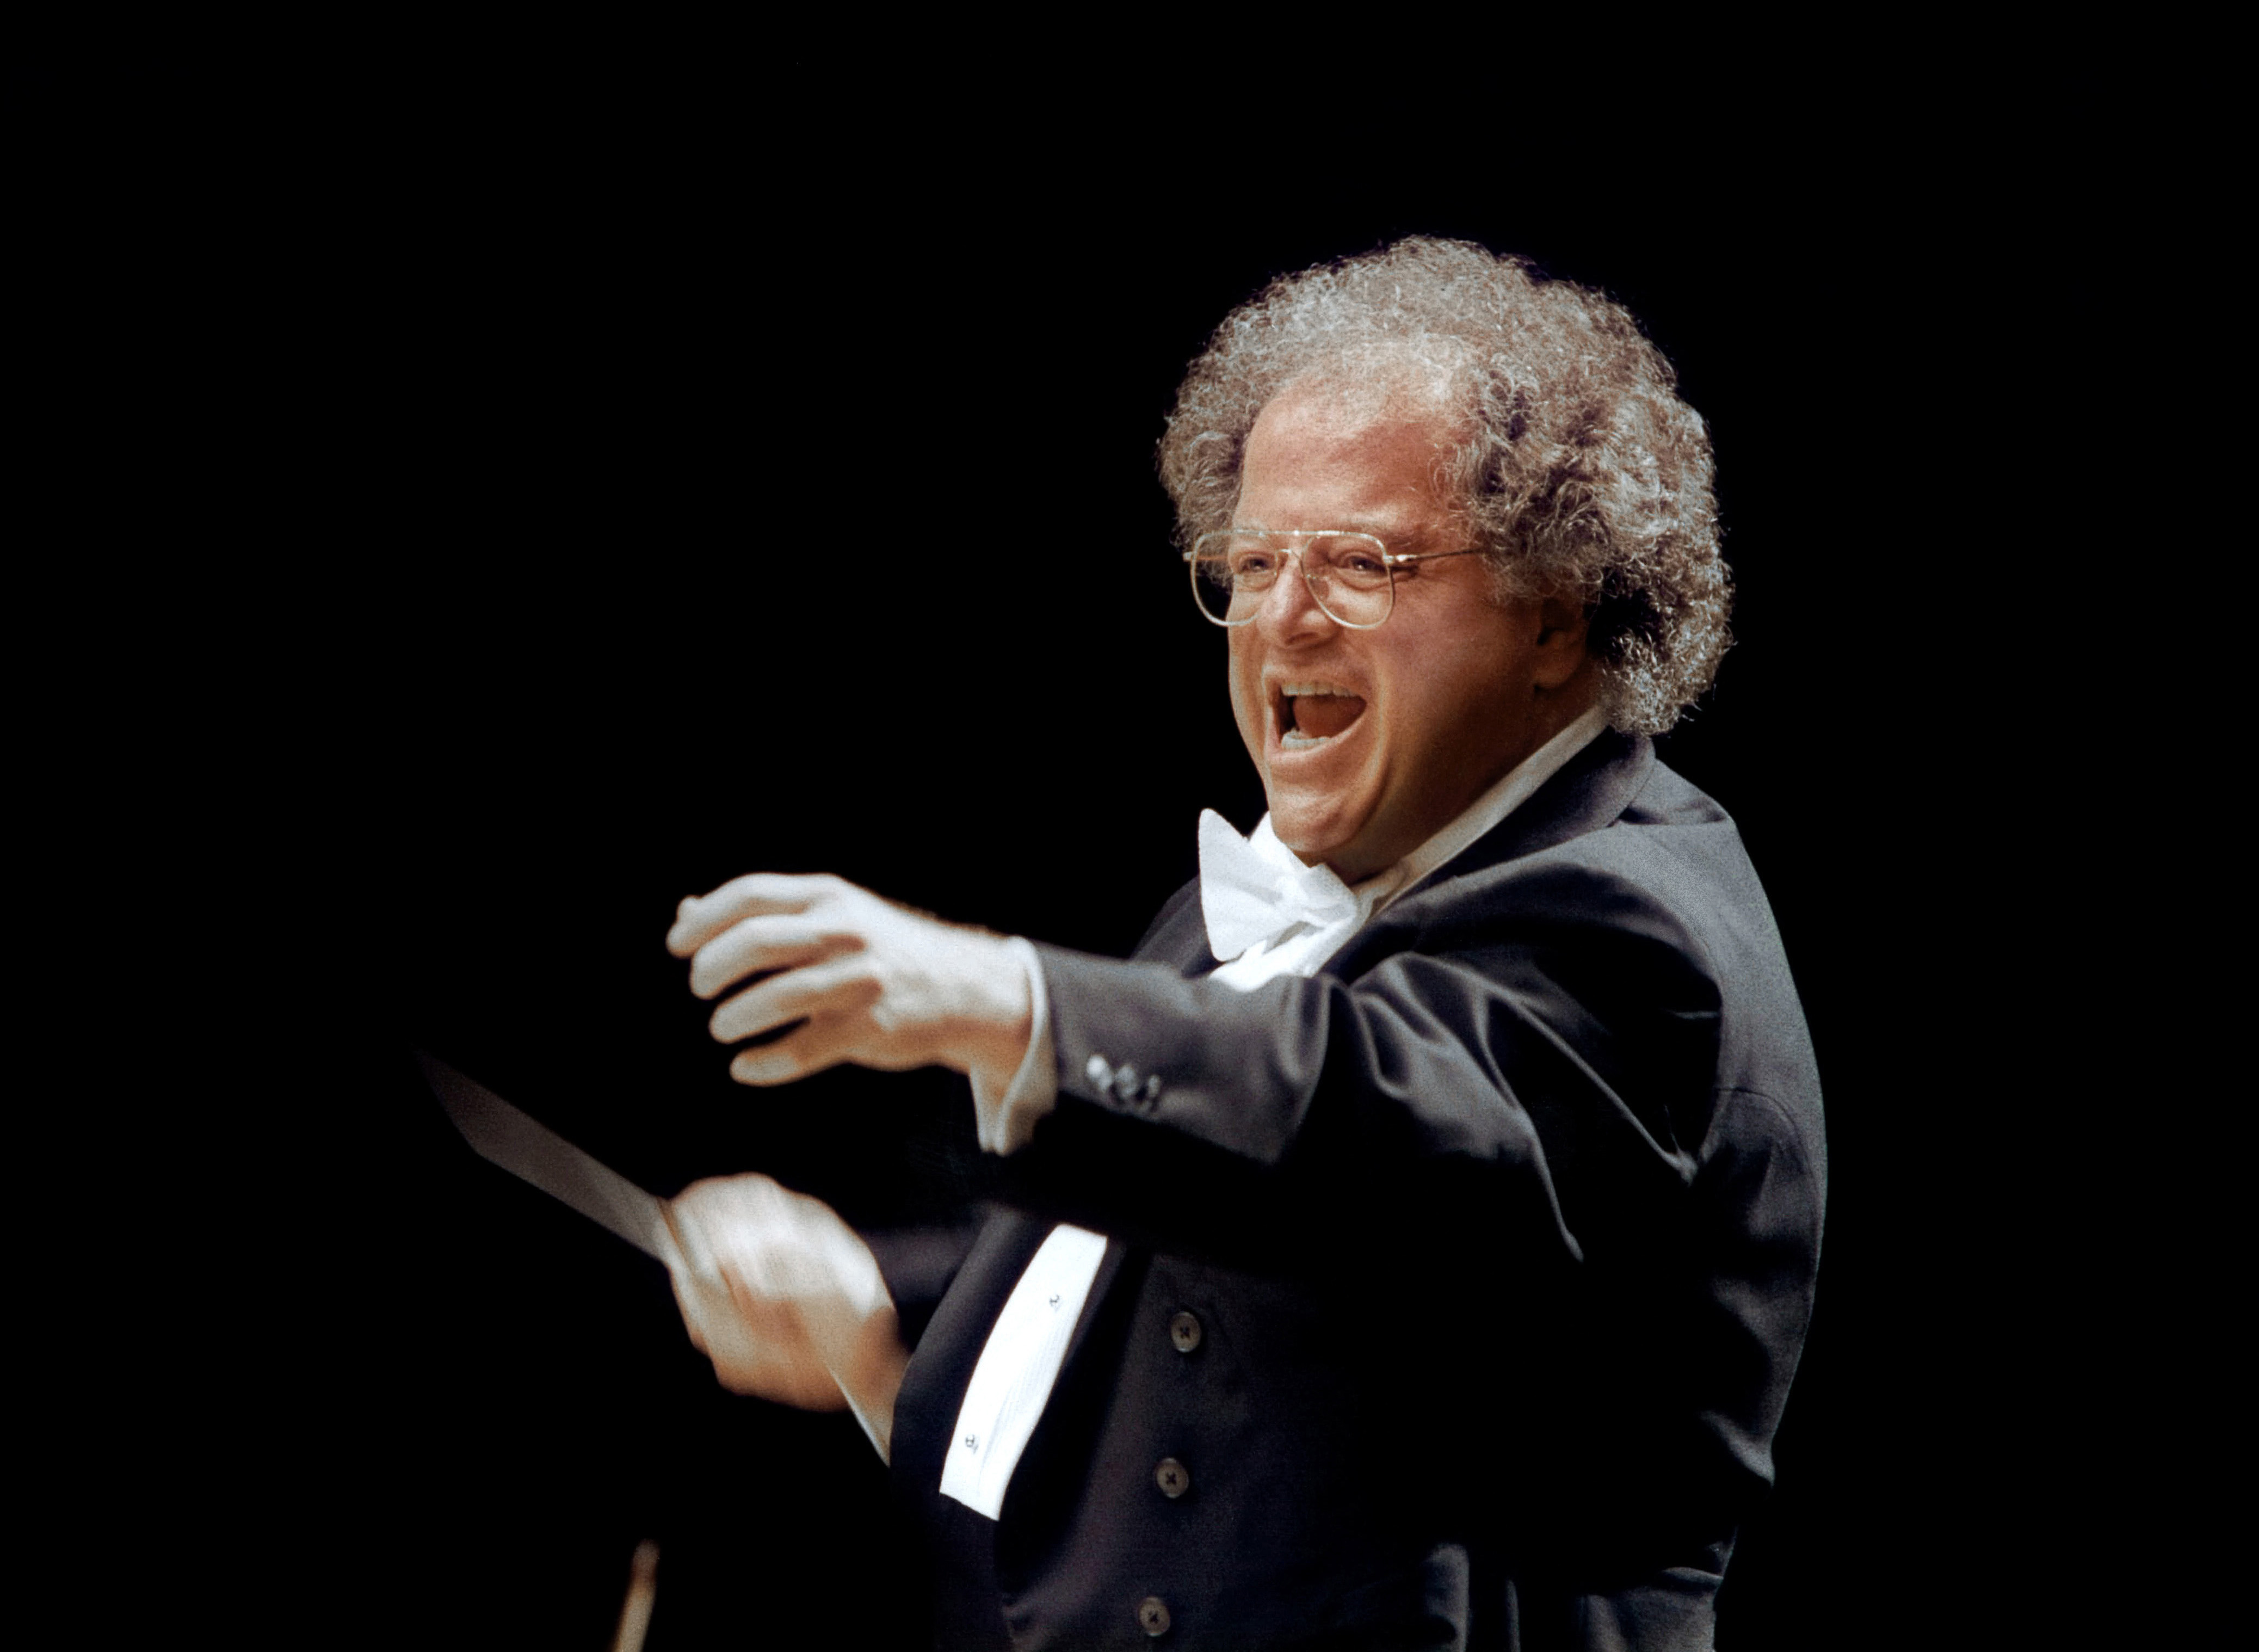 James Levine accused of molesting underaged boy for years